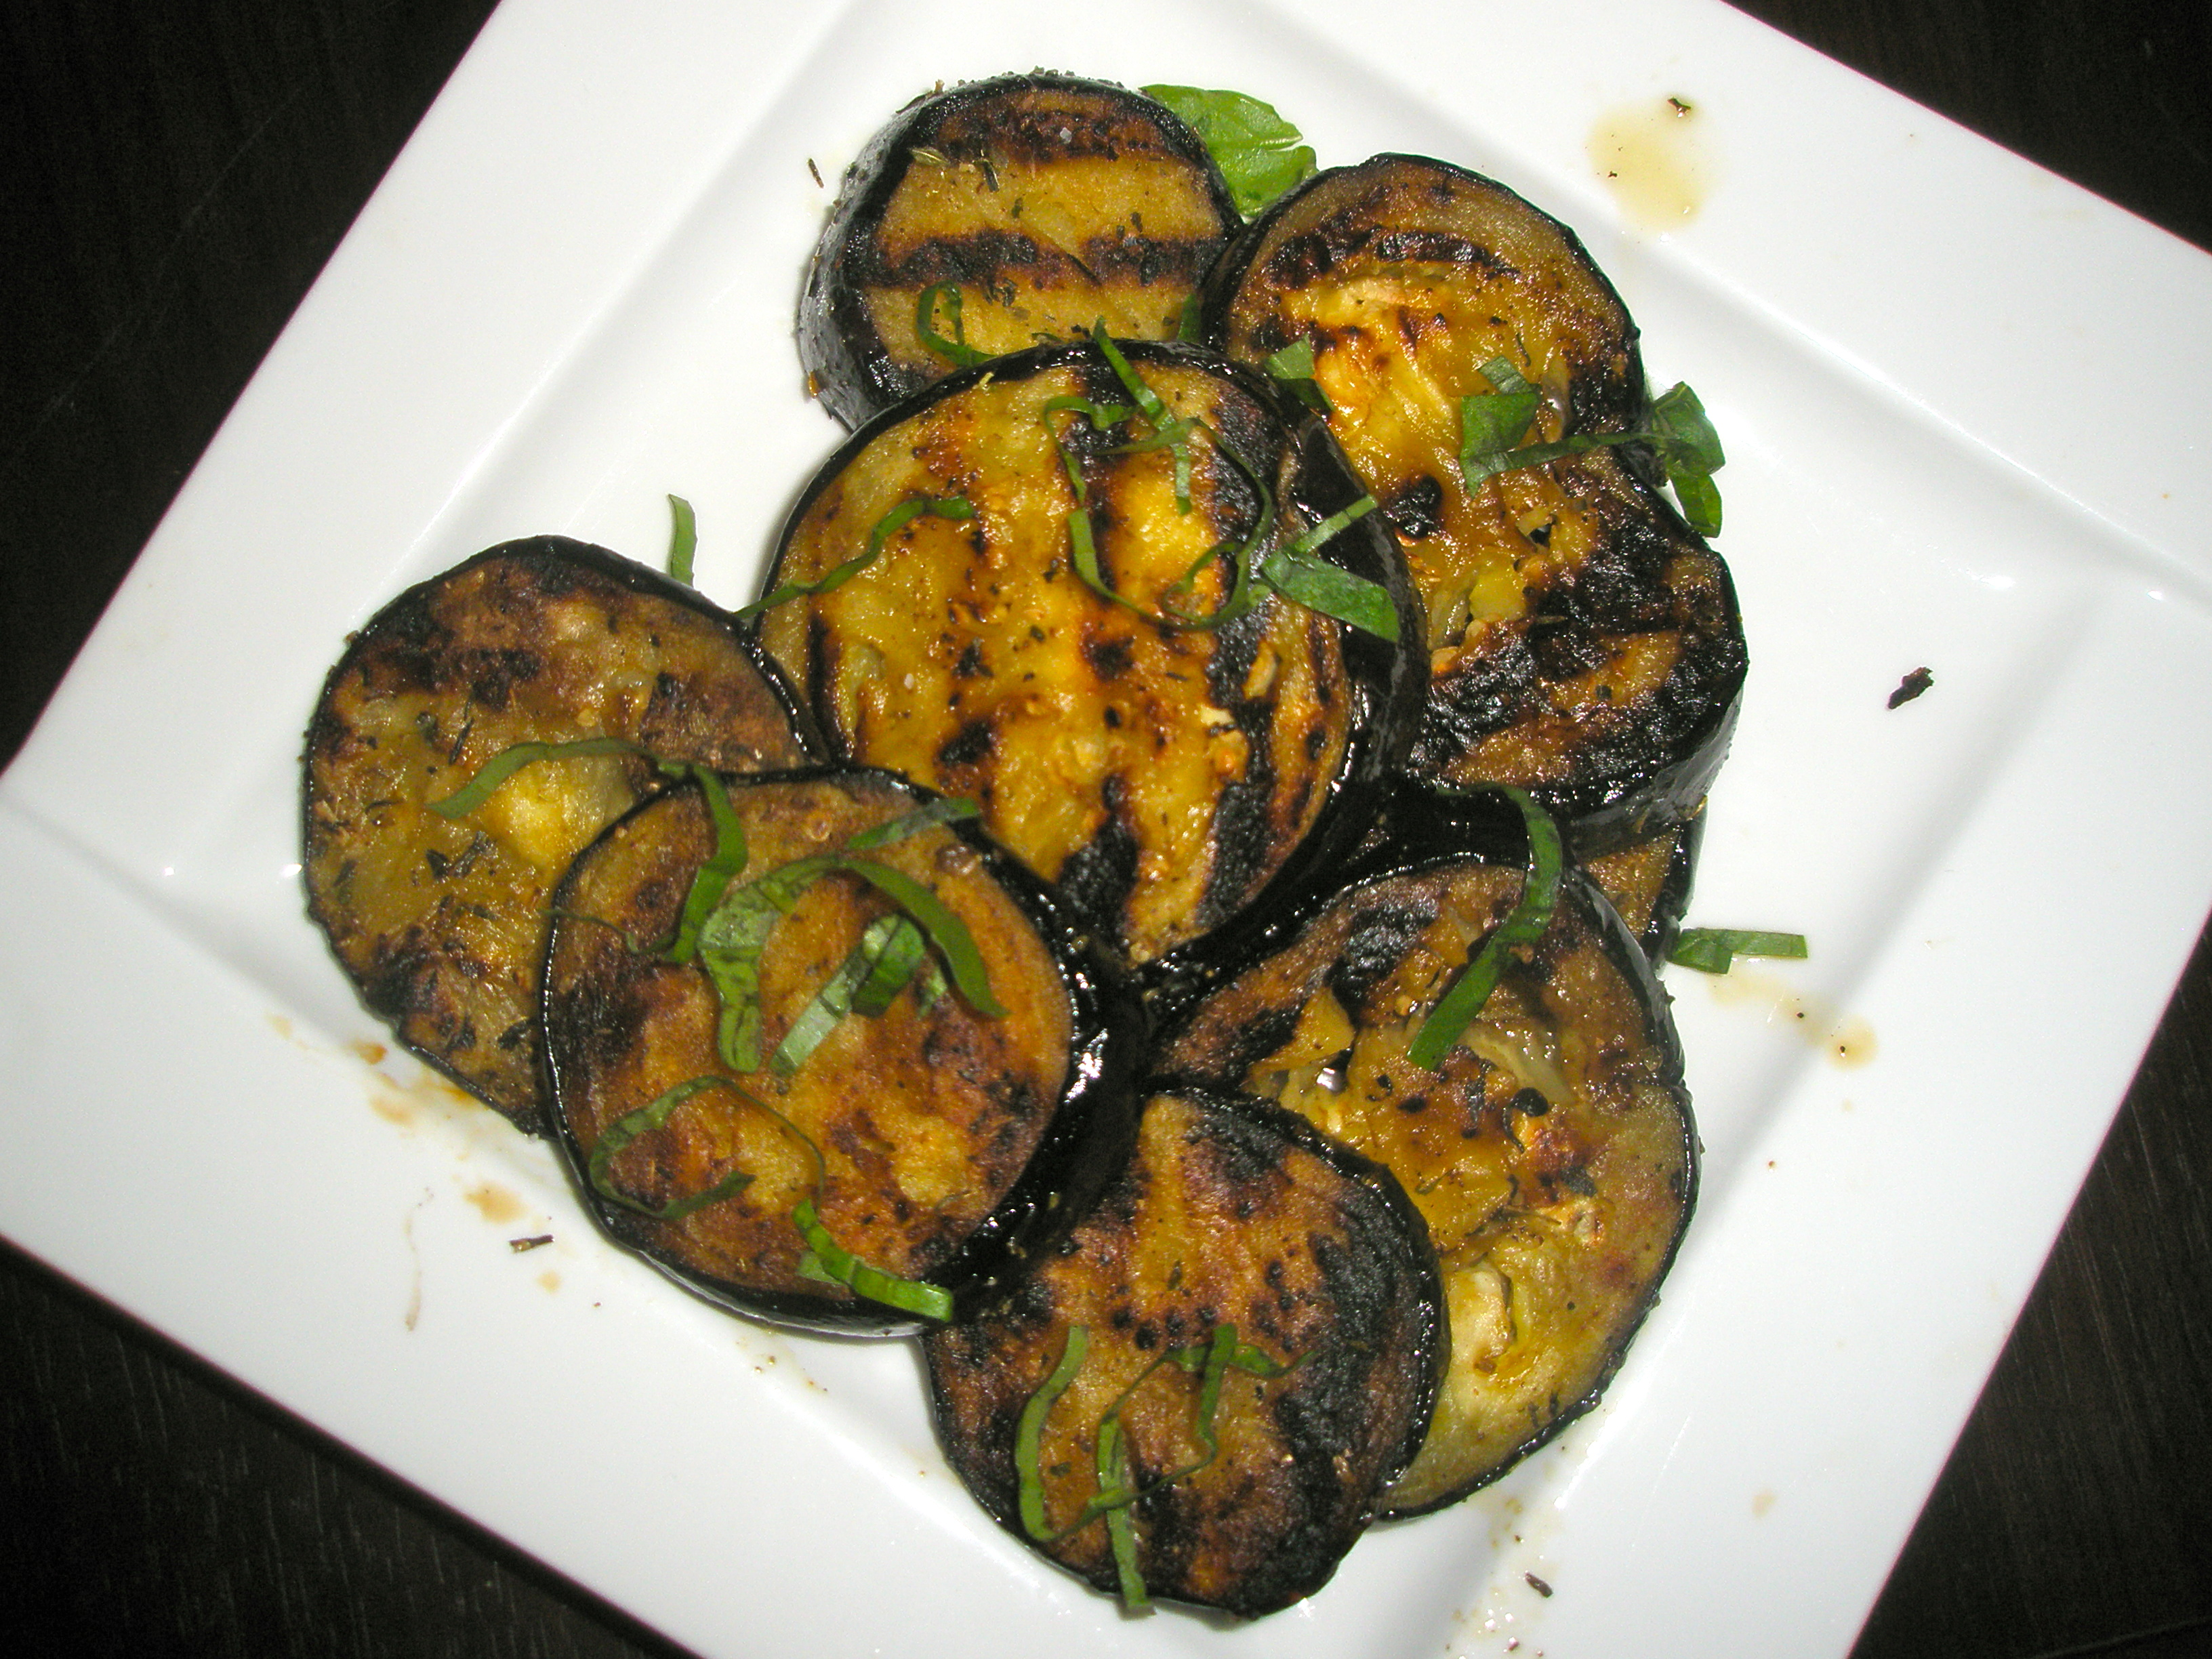 grilled eggplant recipe tablespoons grilled eggplant recipe grilled ...